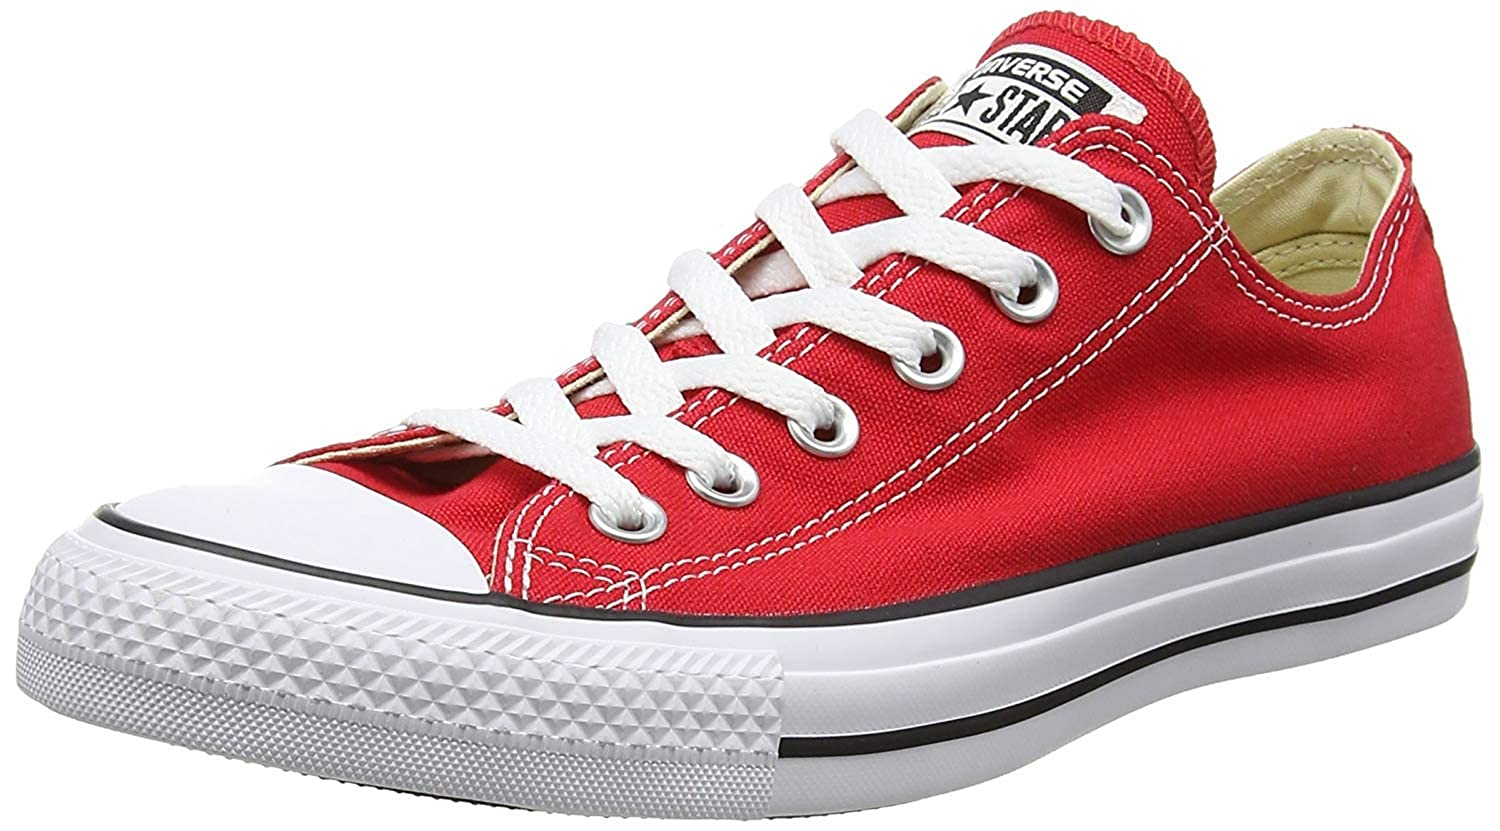 Converse Herren Turnschuhe Chuck Taylor All Star Low Top MultiFarbe Mehrfarbig CT OX Periwinkle  148845F Canvas